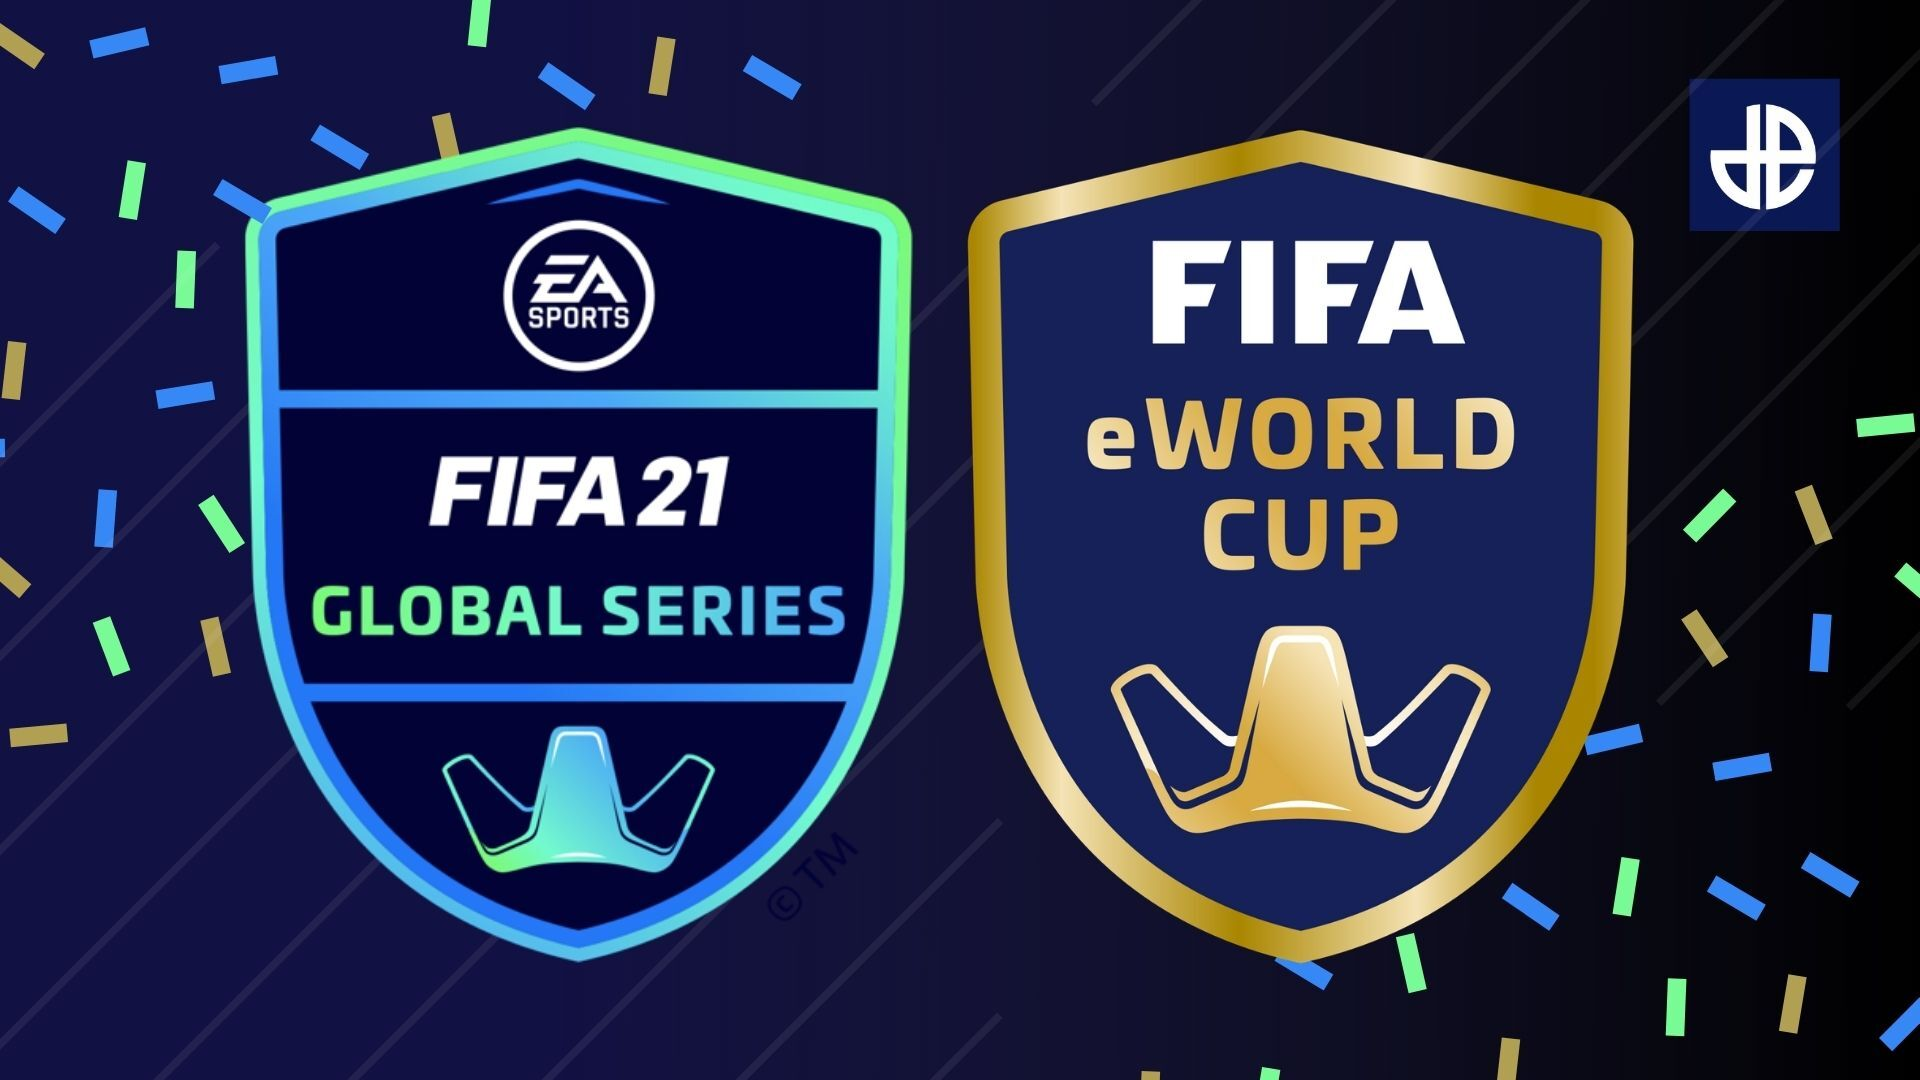 FIFA 21 Global Series and eWorld Cup